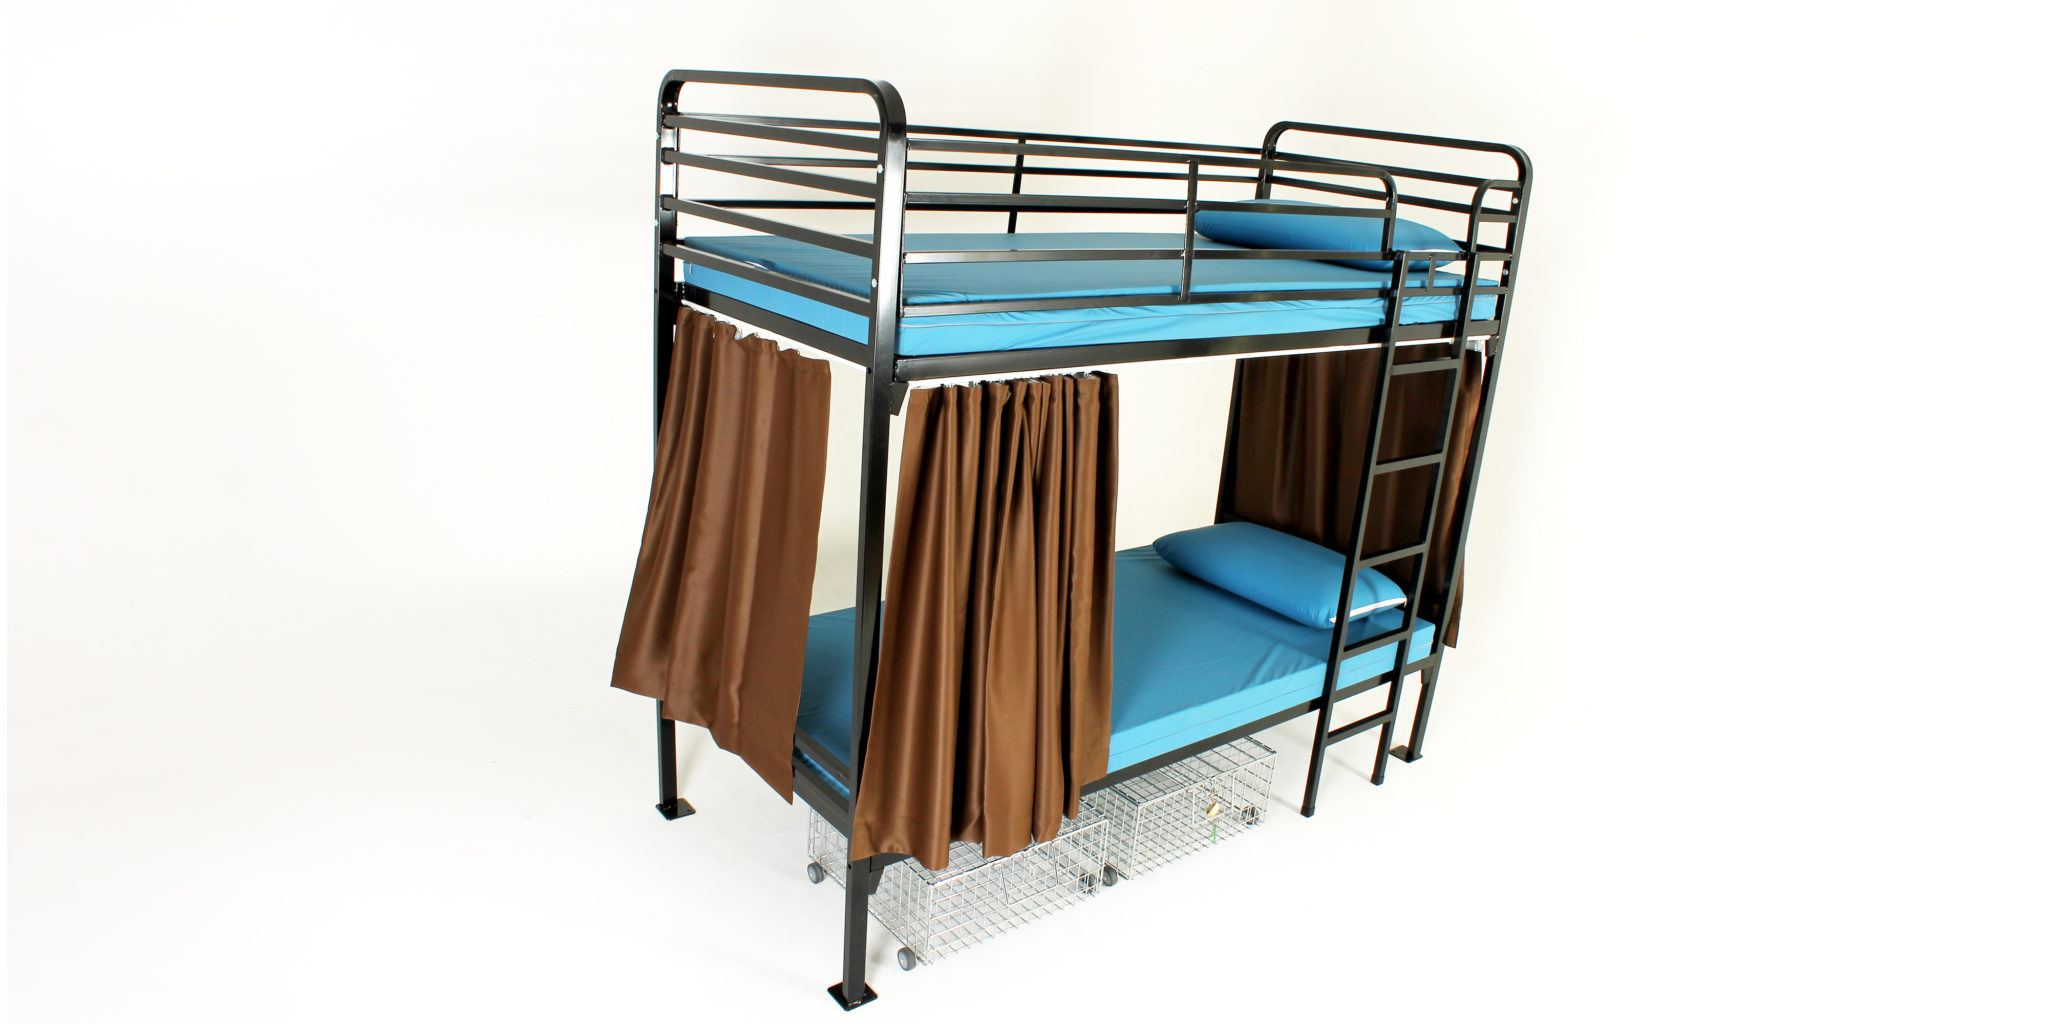 Triple bunk beds for adults - None